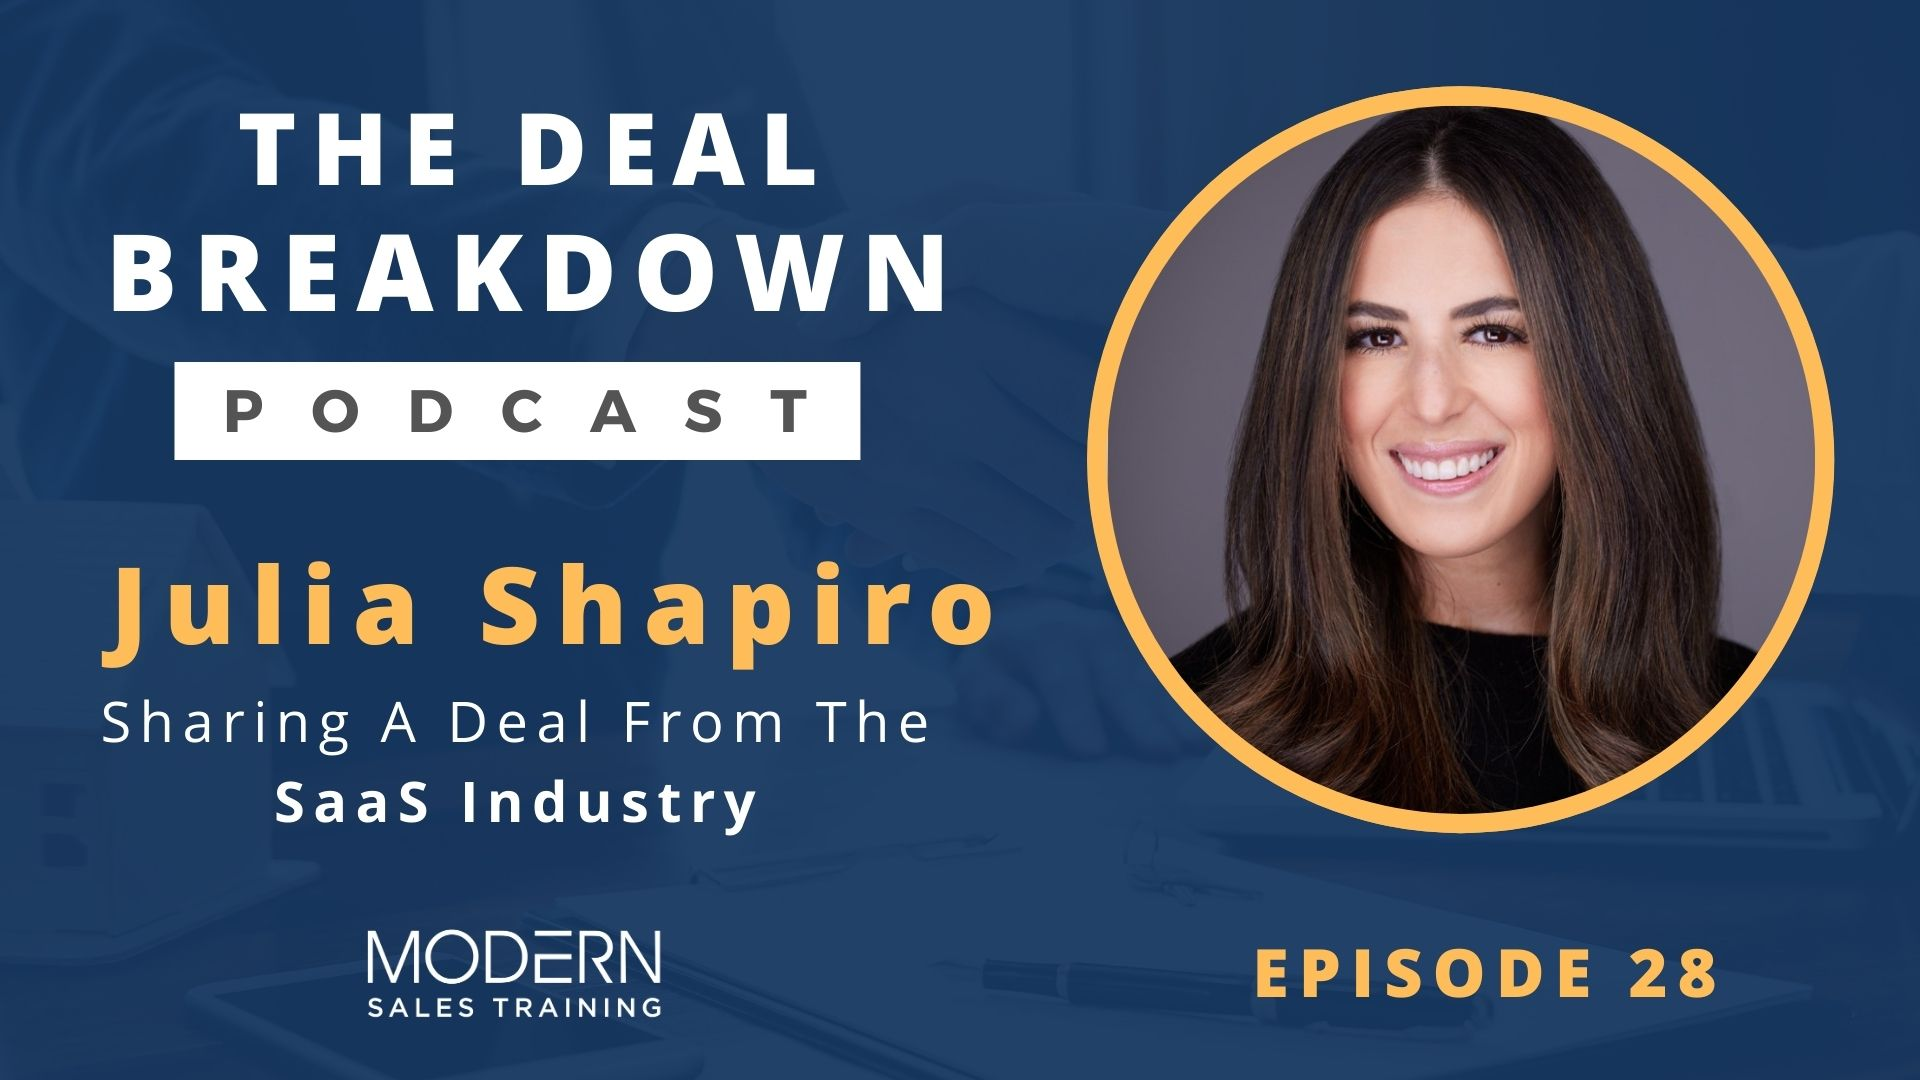 The-Deal-Breakdown-Podcast-Modern-Sales-Training-Julia-Shapiro